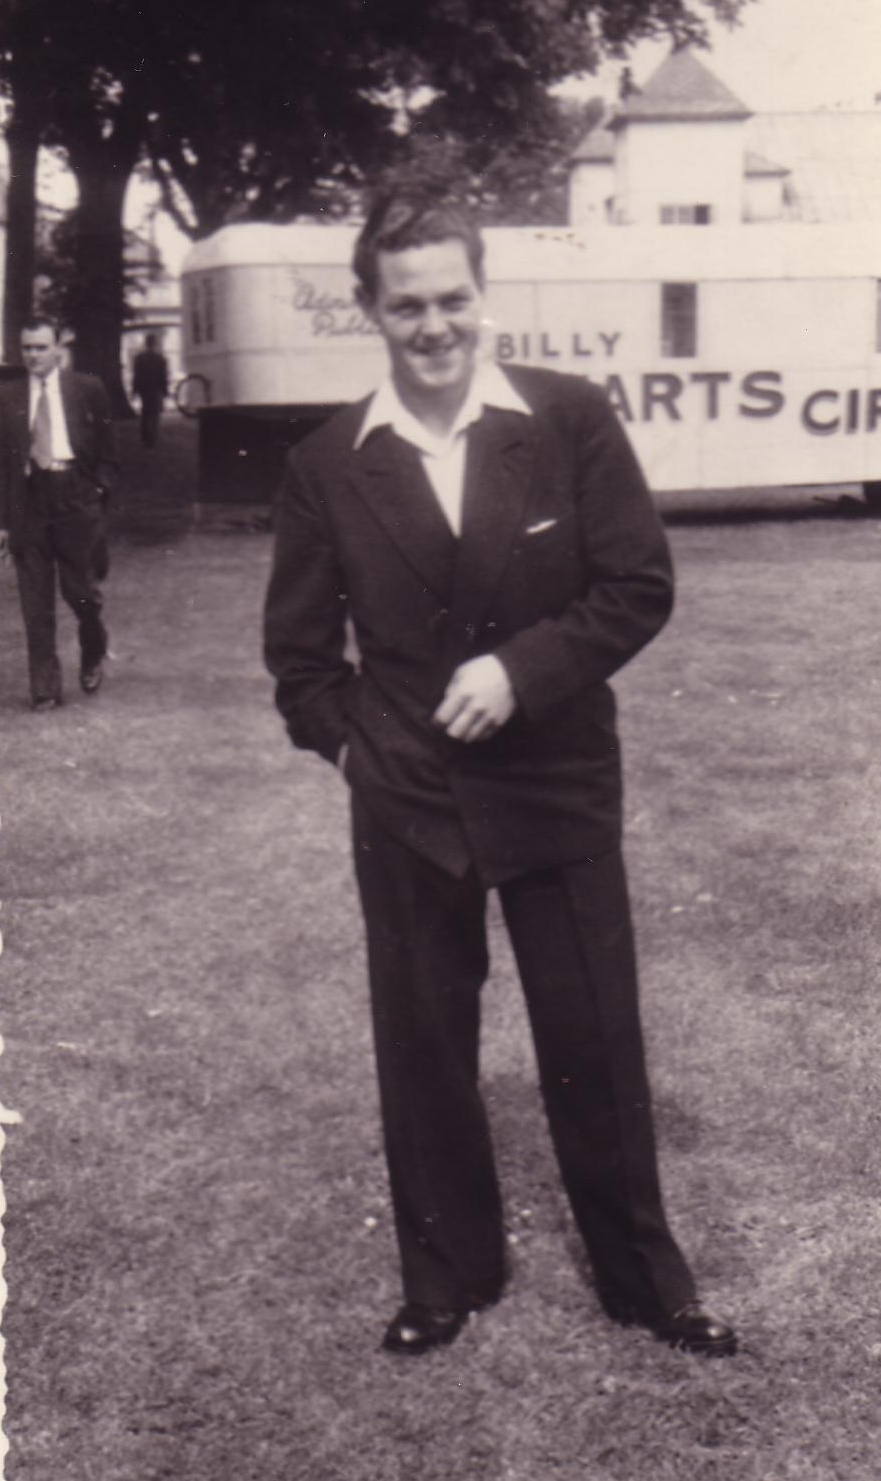 Young Man In Suit At Circus, early 1950s